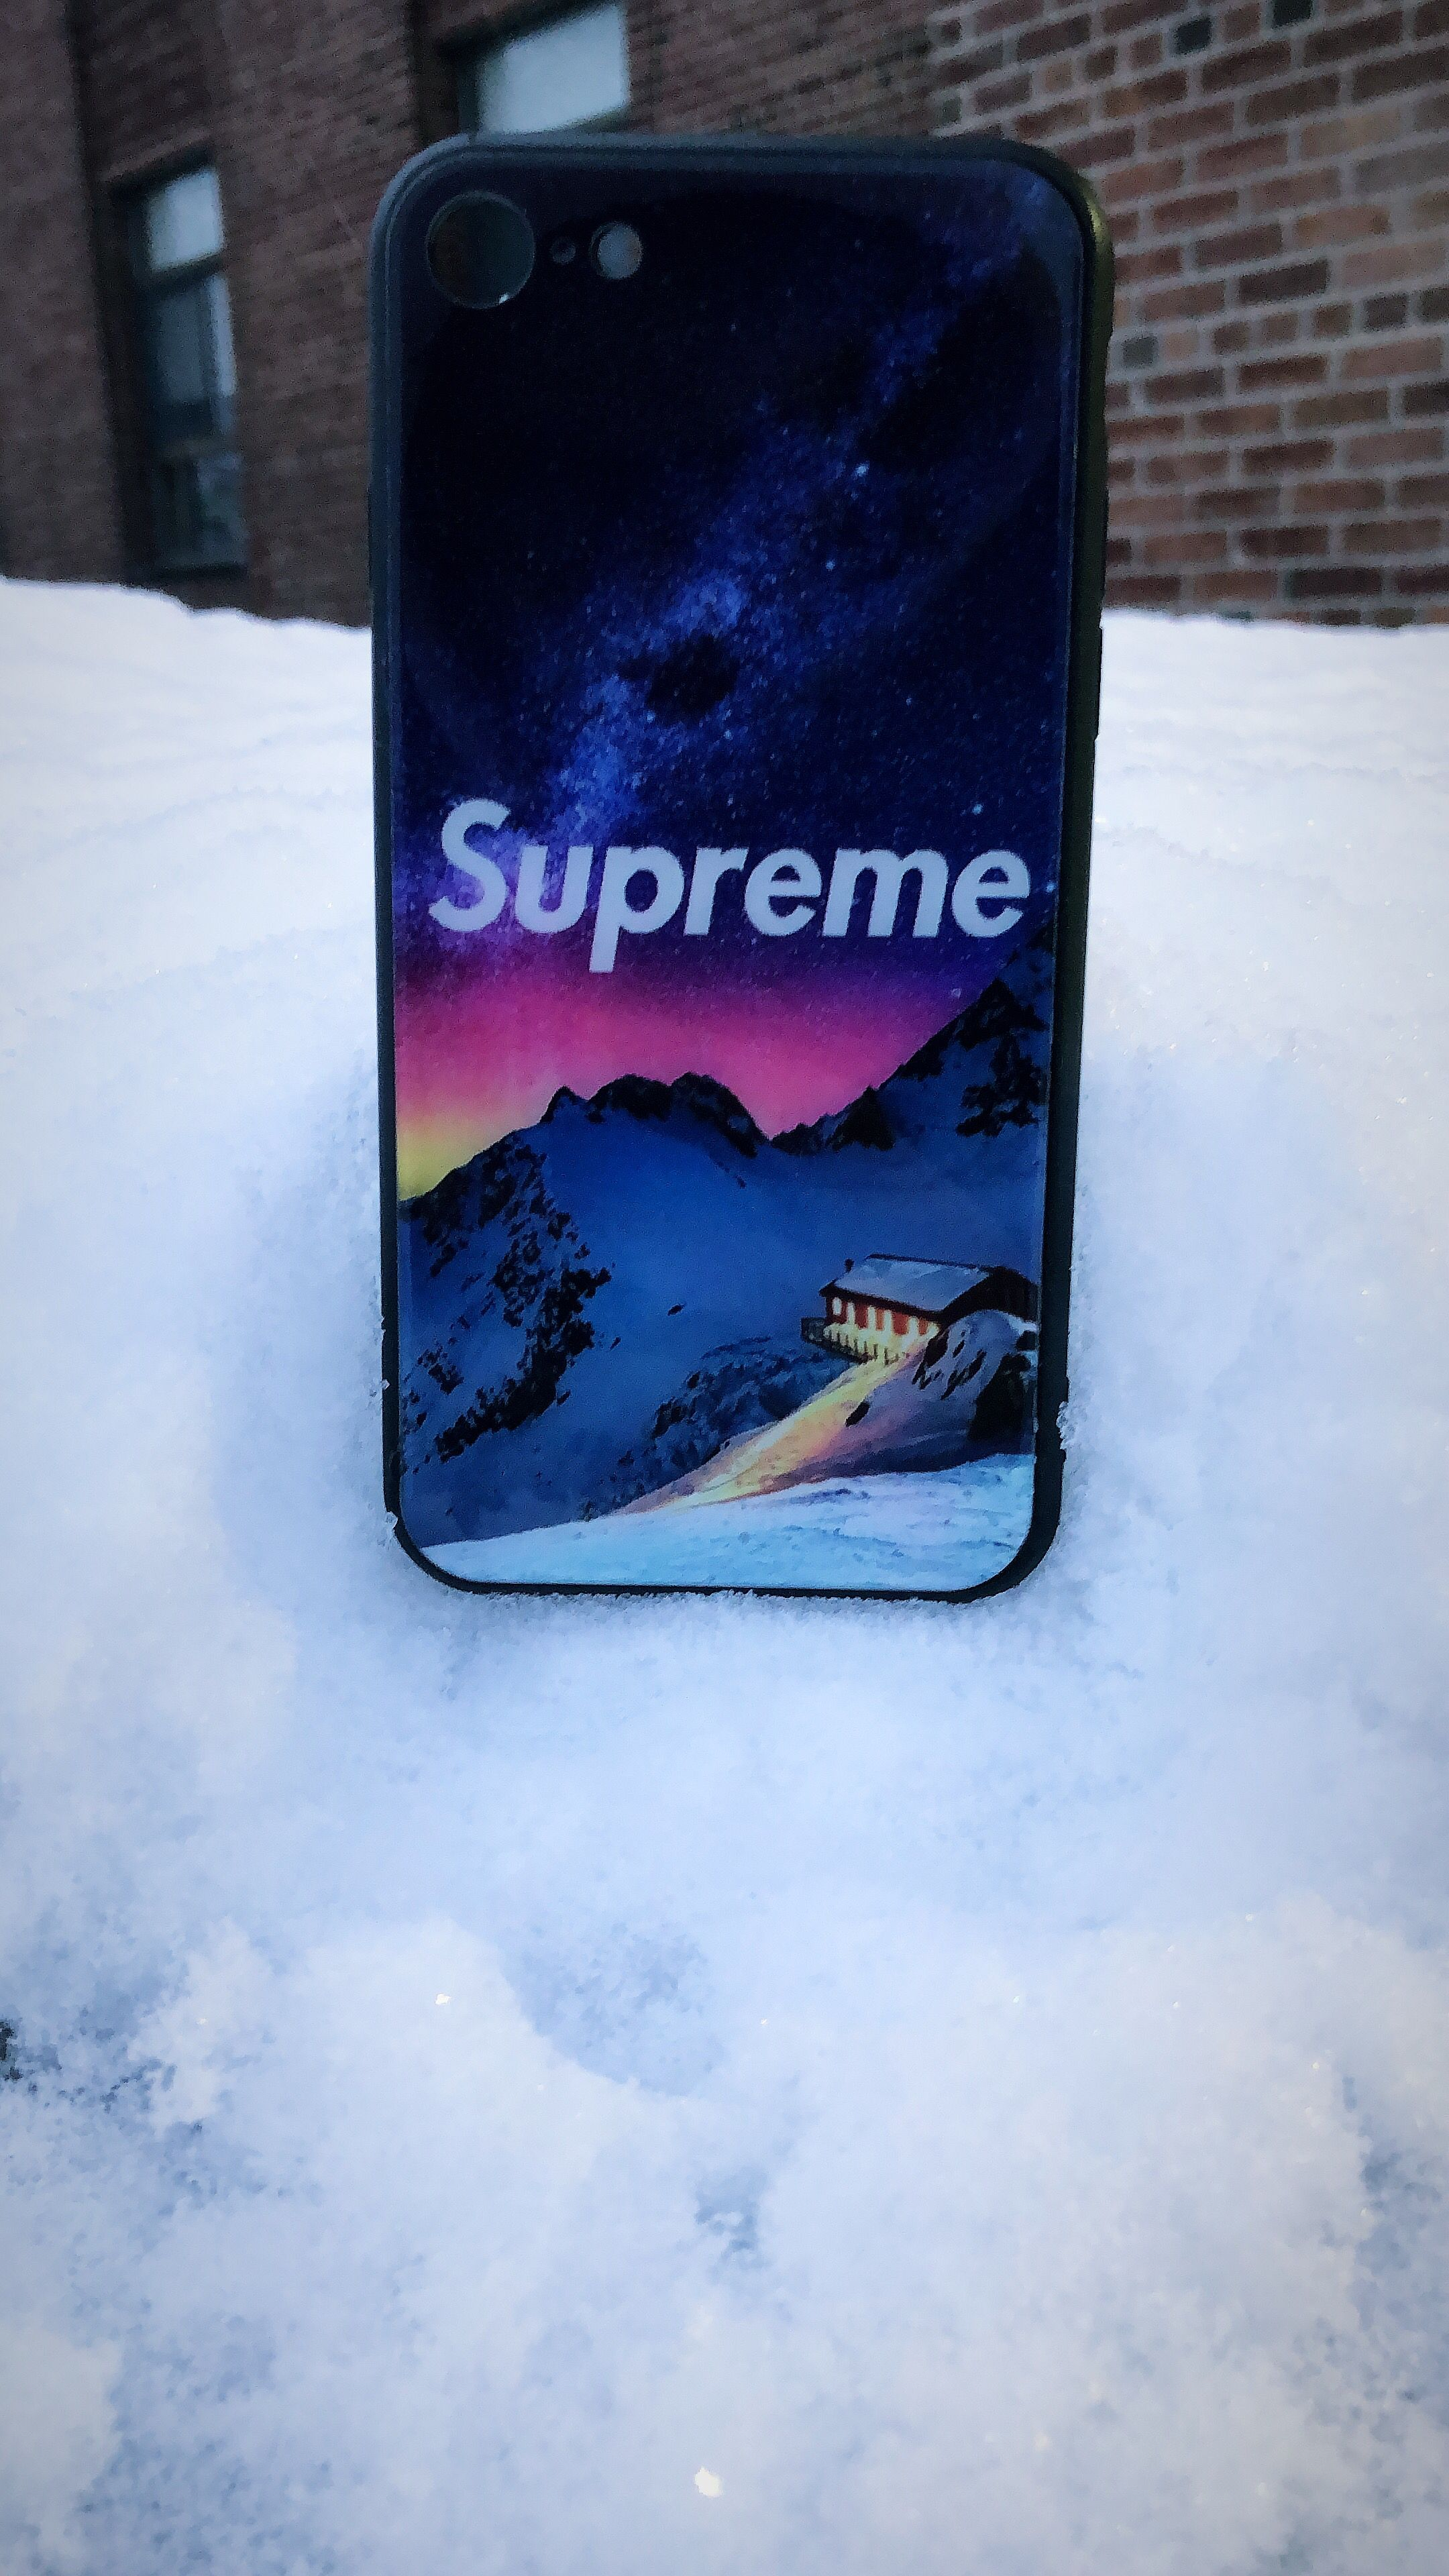 Supreme Winter Snow Iphone Case Case Iphone Cases Supreme Wallpaper